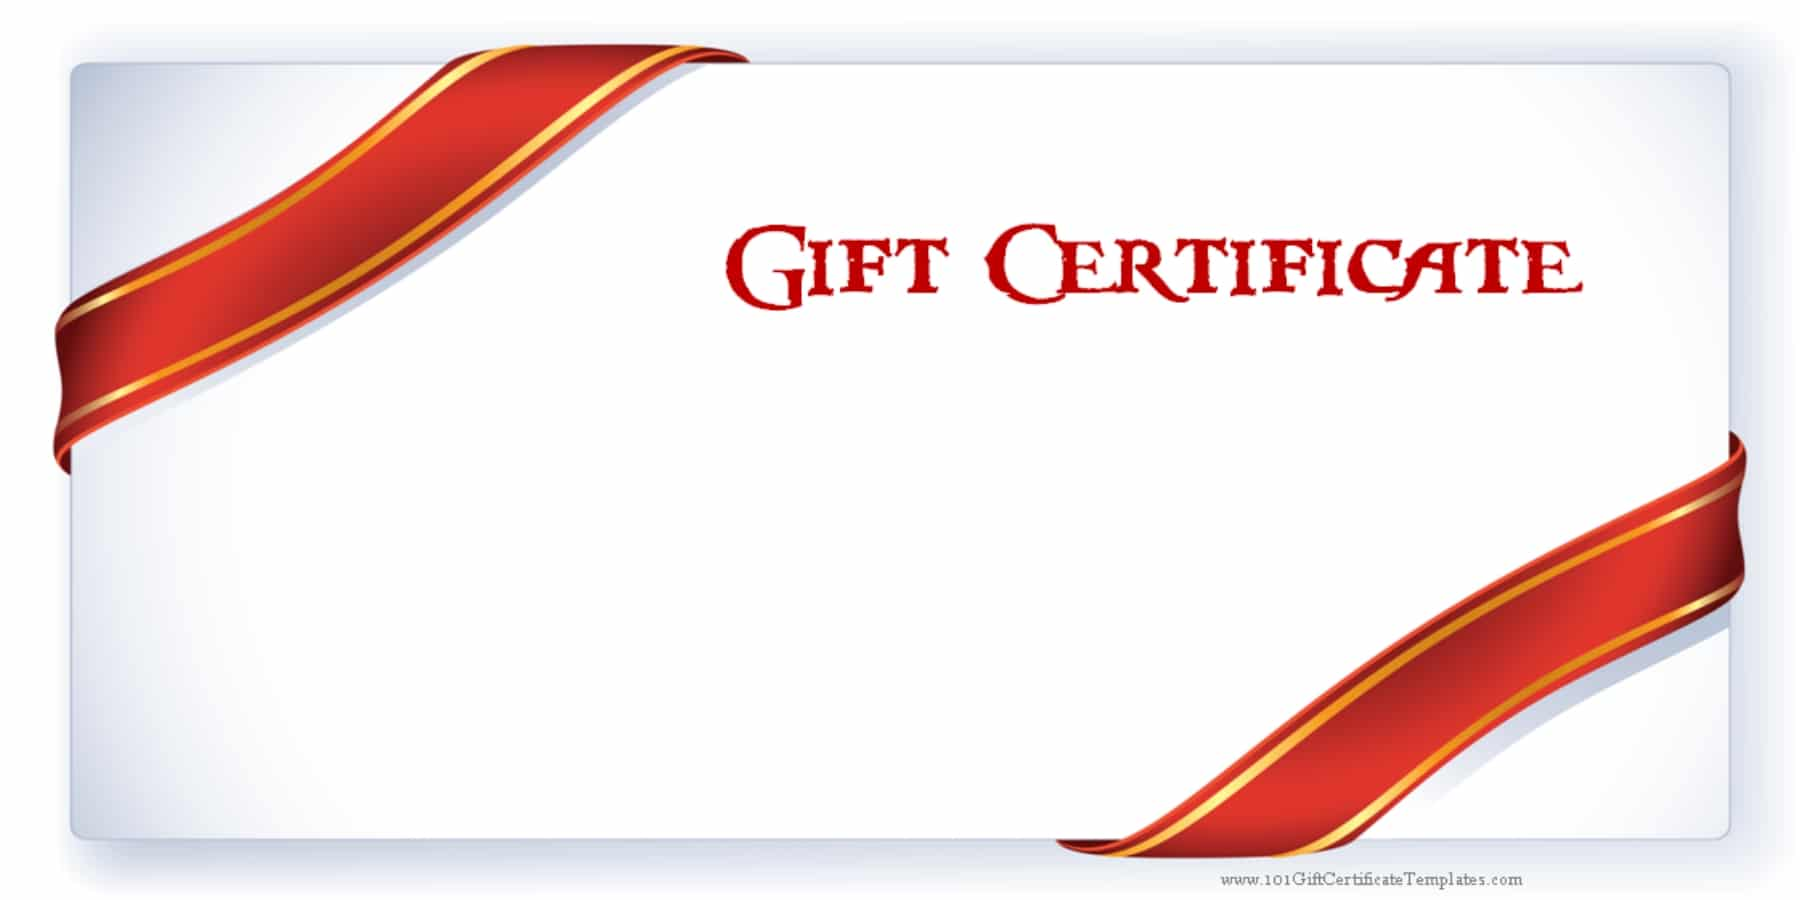 Gift coupon template hatchurbanskript gift coupon template yelopaper Image collections